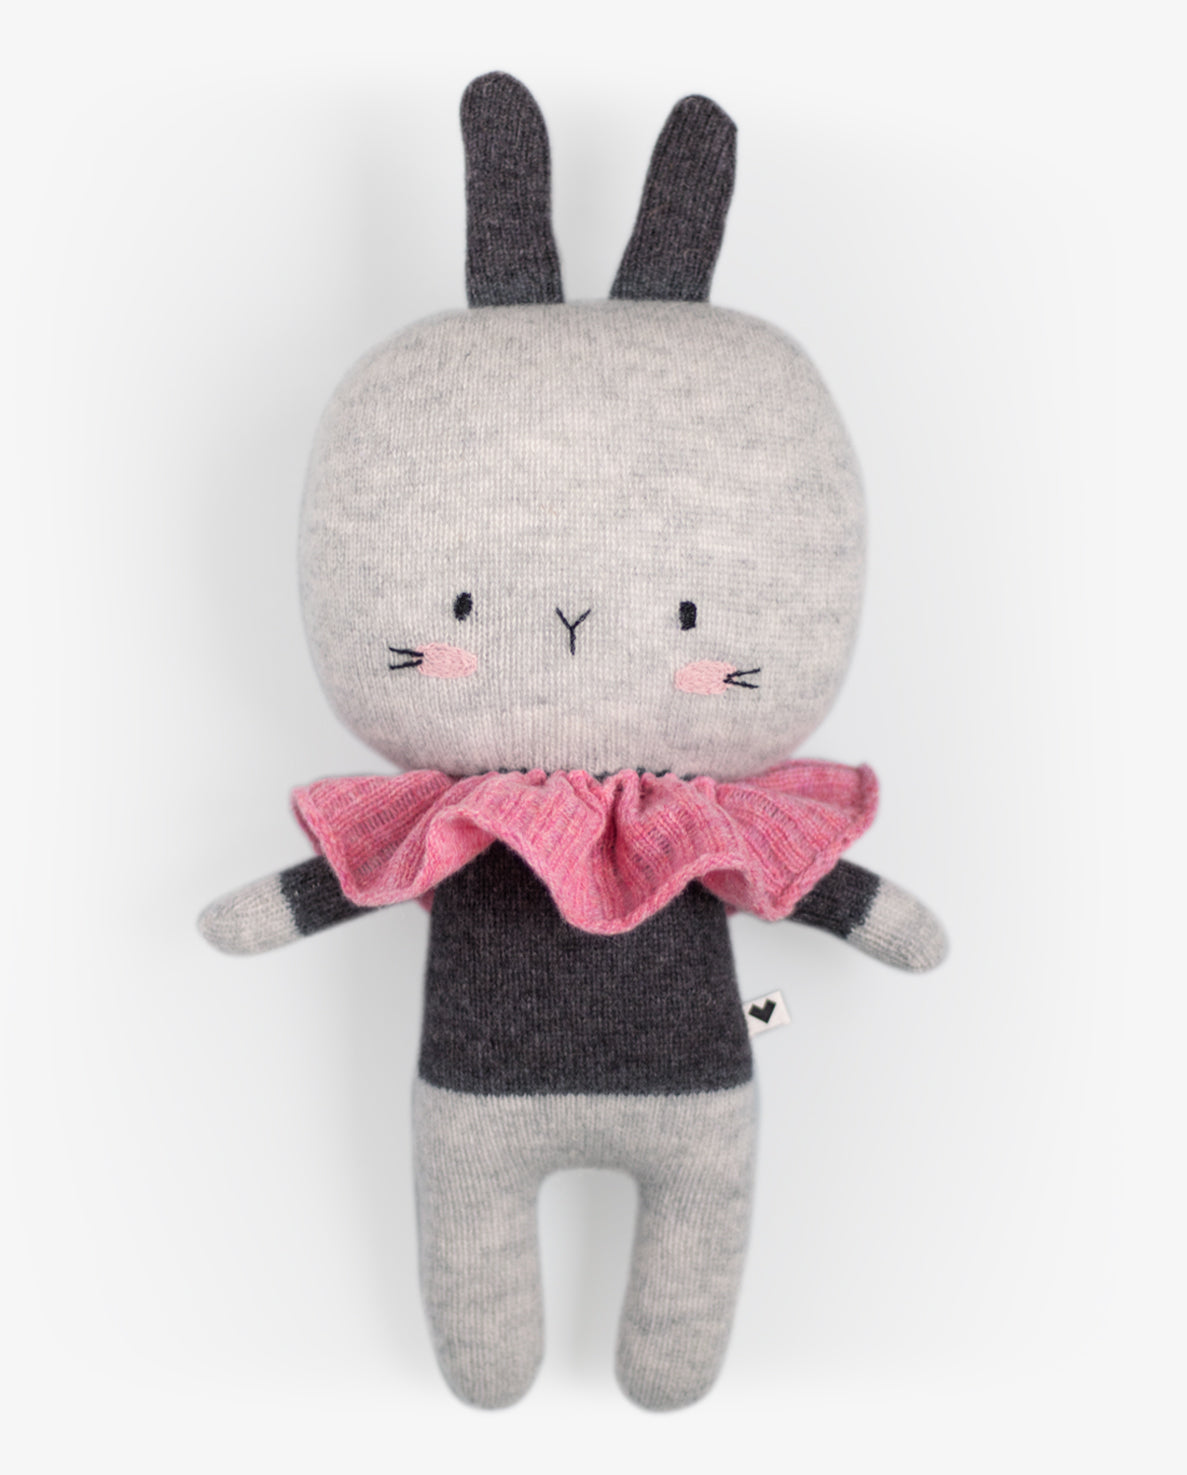 LAUVELY The Jumper Bunny Arlo Grey